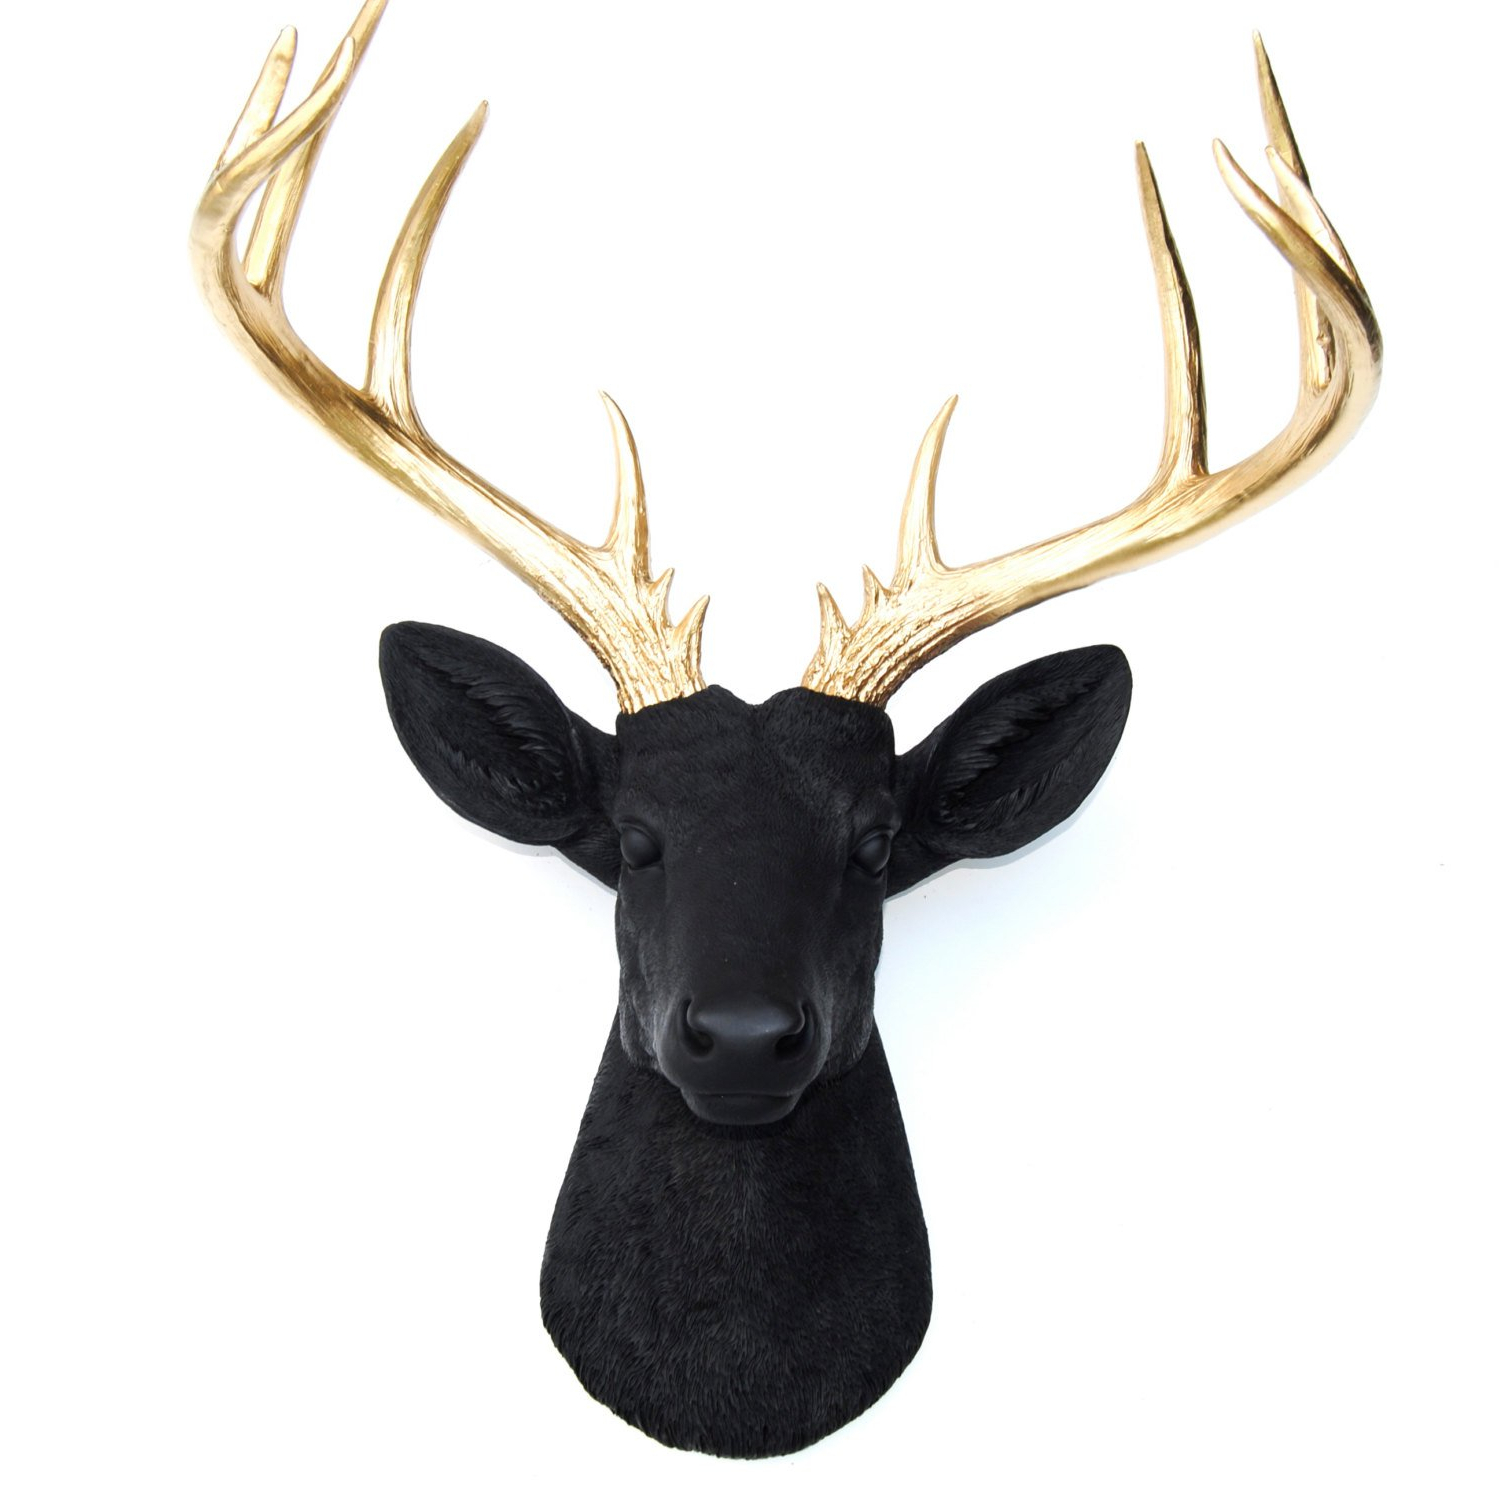 Most Popular Amazon: Near And Deer 14 Point Fake Deer Head – Large Faux Pertaining To Large Deer Head Faux Taxidermy Wall Decor (Gallery 13 of 20)